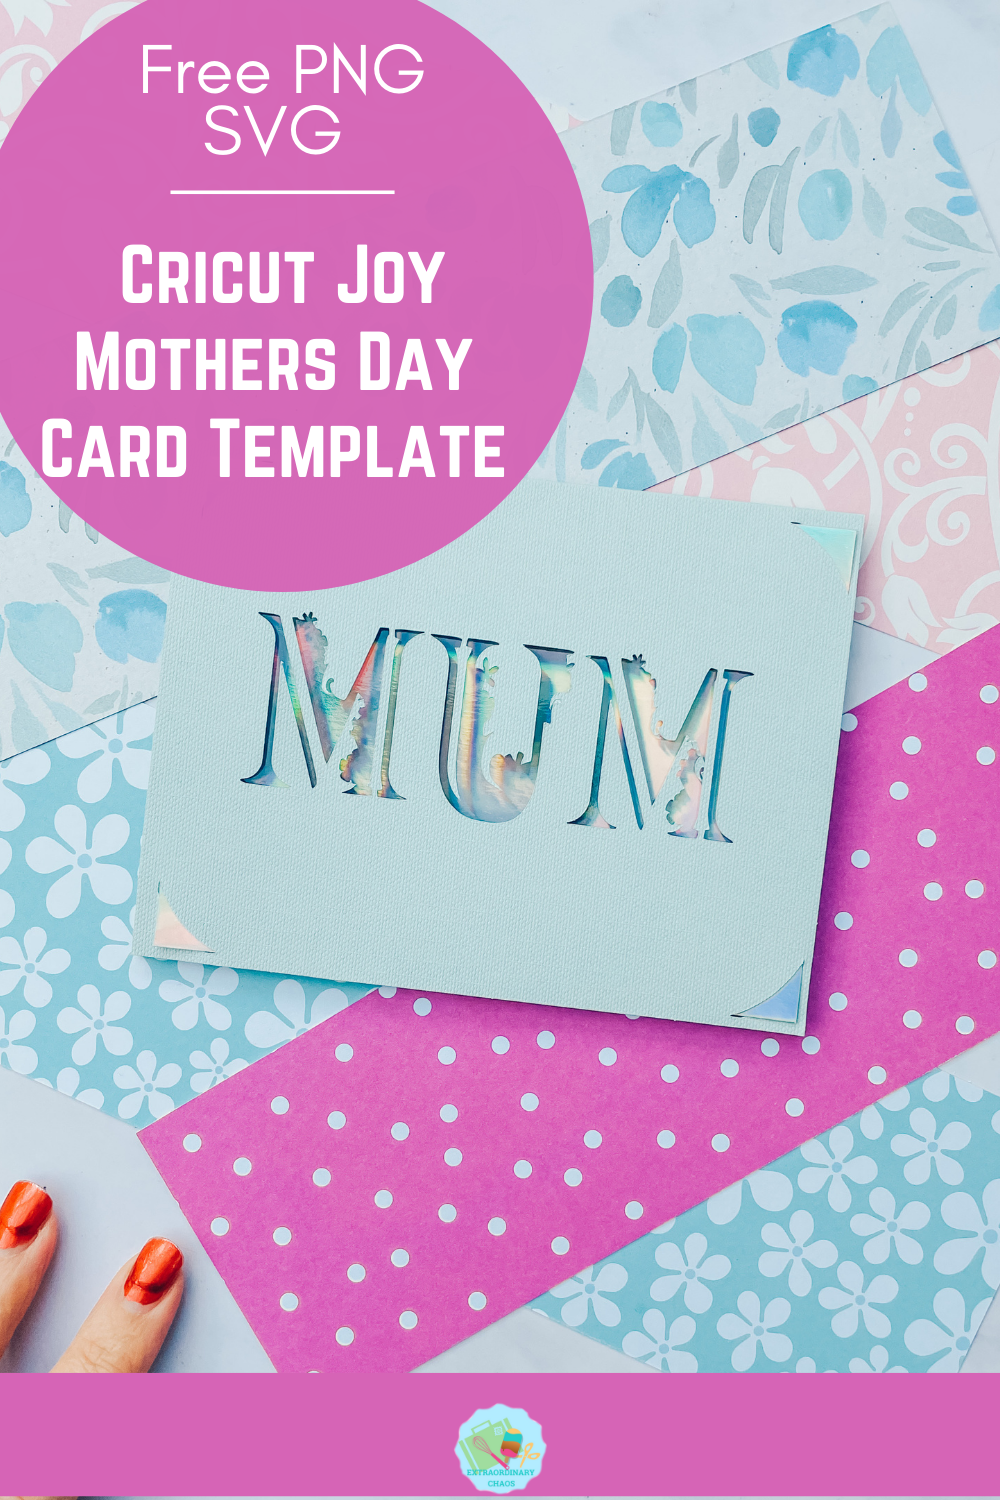 Free PNG SVG Mothers Day Card Template